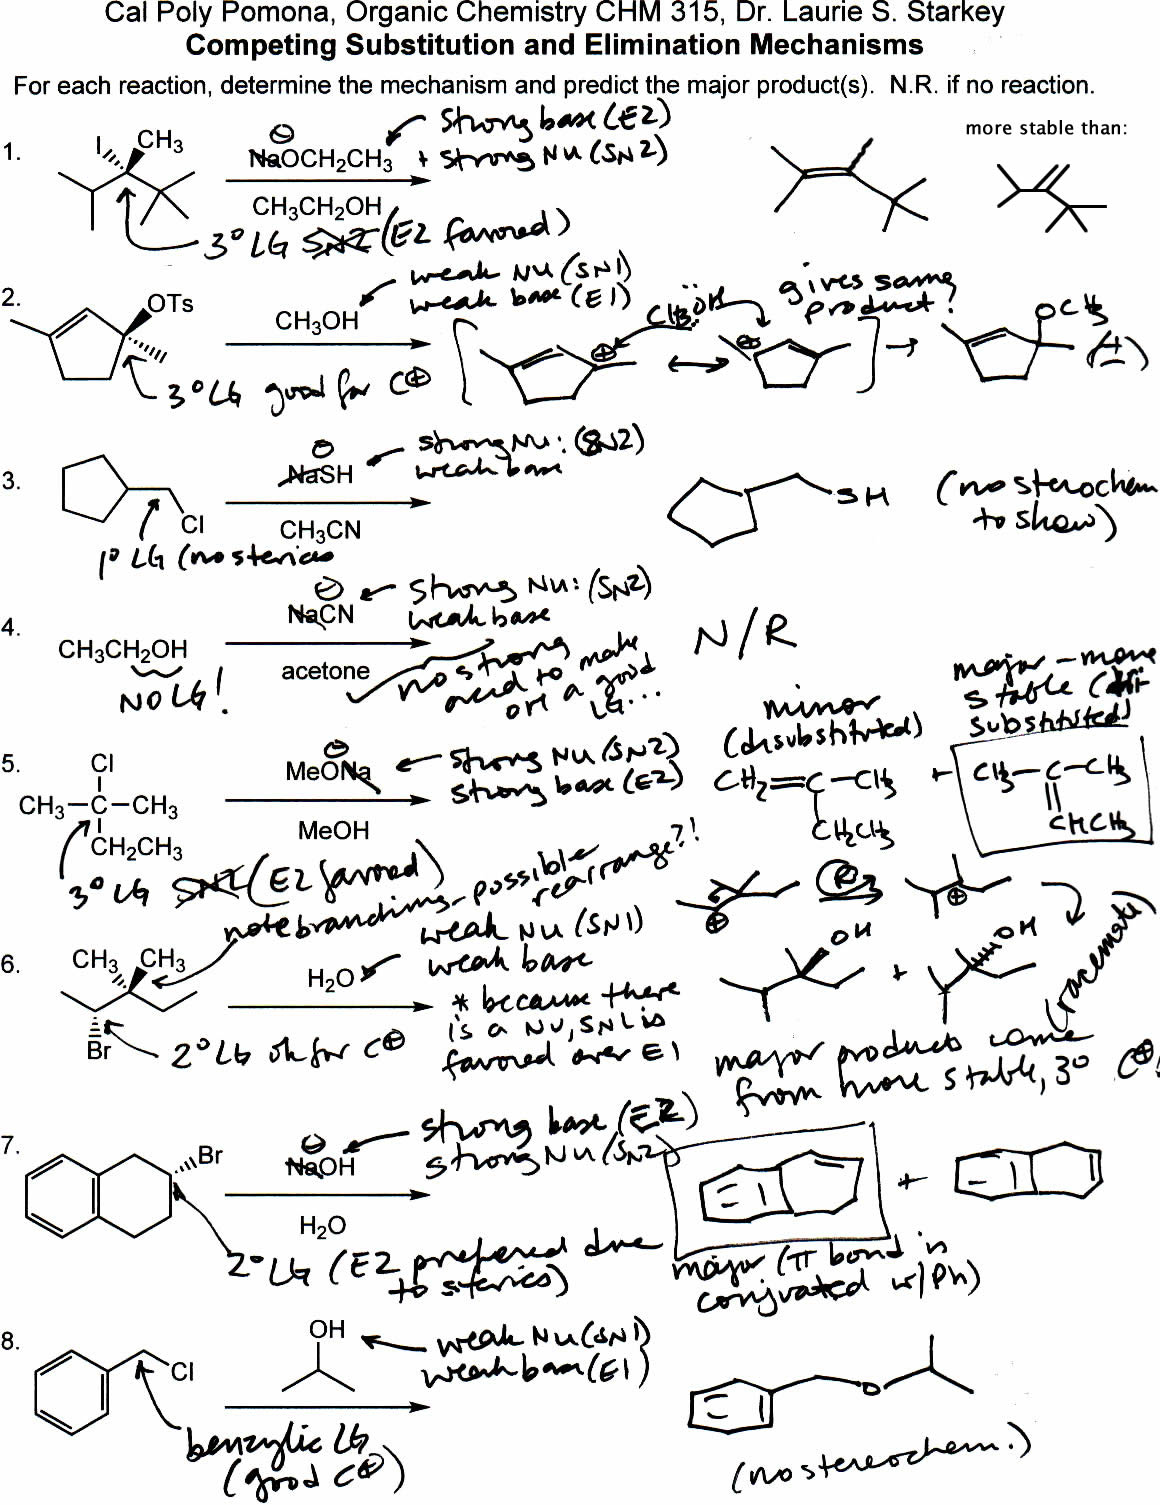 The Complete Organic Chemistry Worksheet Answers